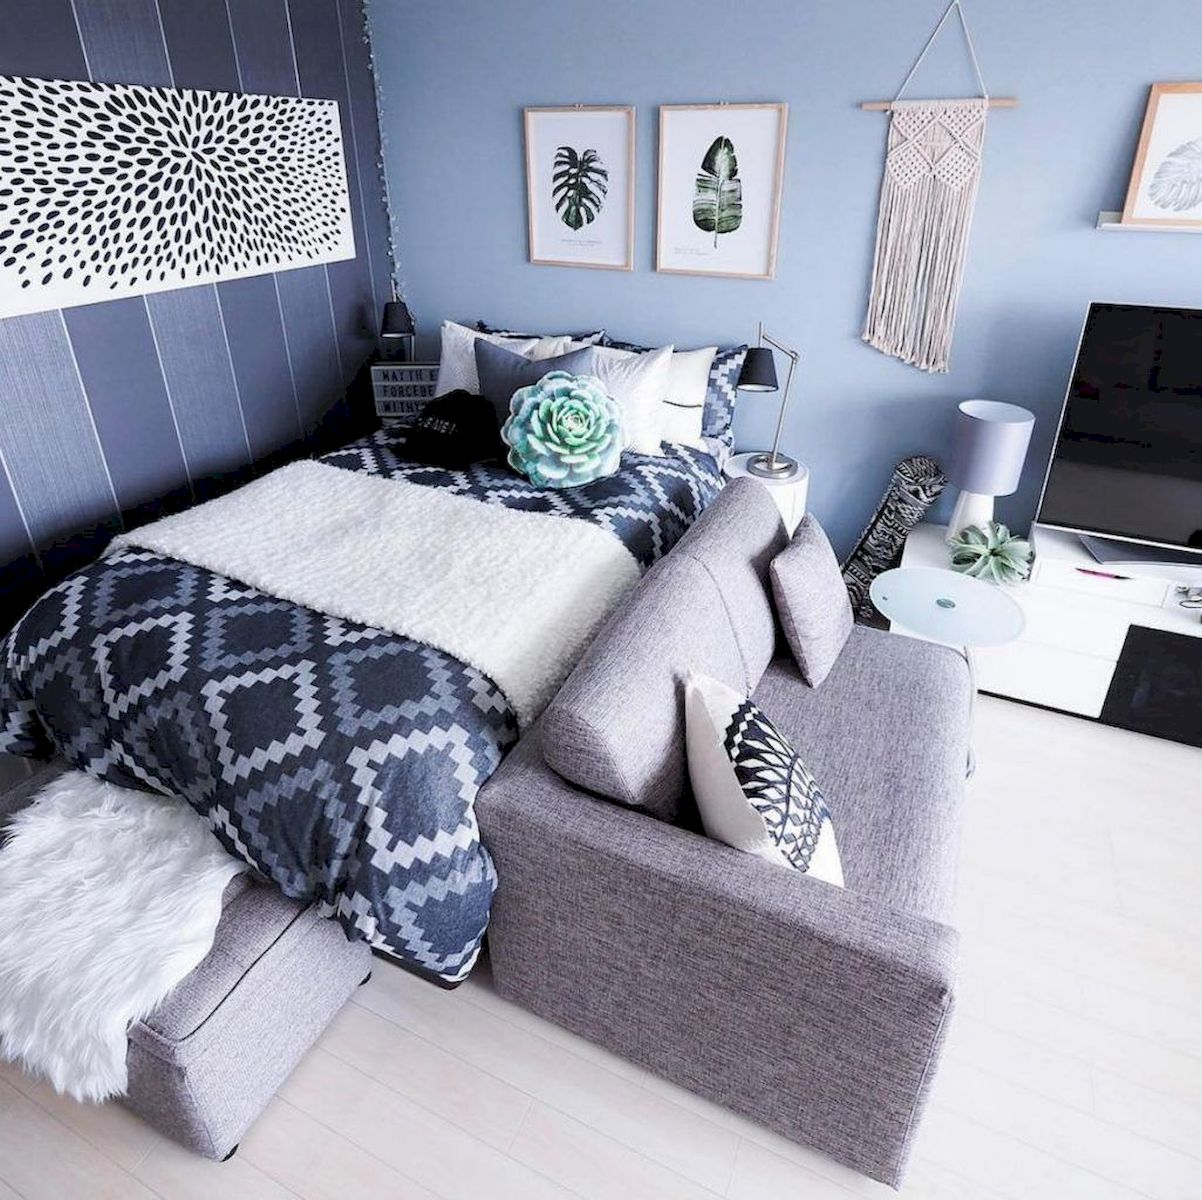 Awesome Small Bedroom Decorating Ideas On A Budget (13)